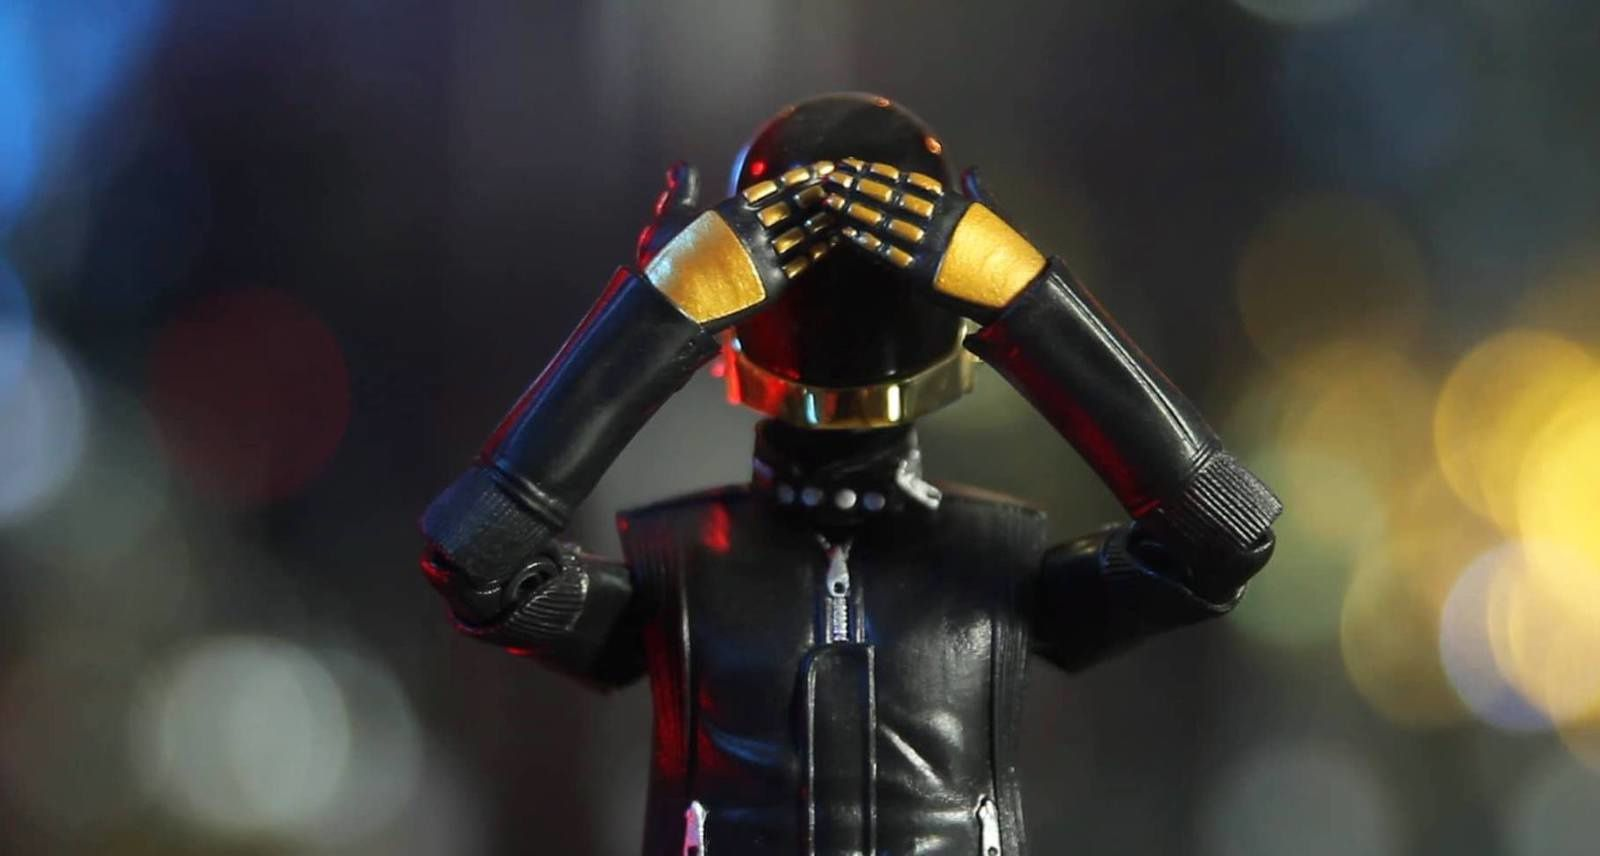 Le plus grand fan de Daft Punk s'illustre dans un documentaire